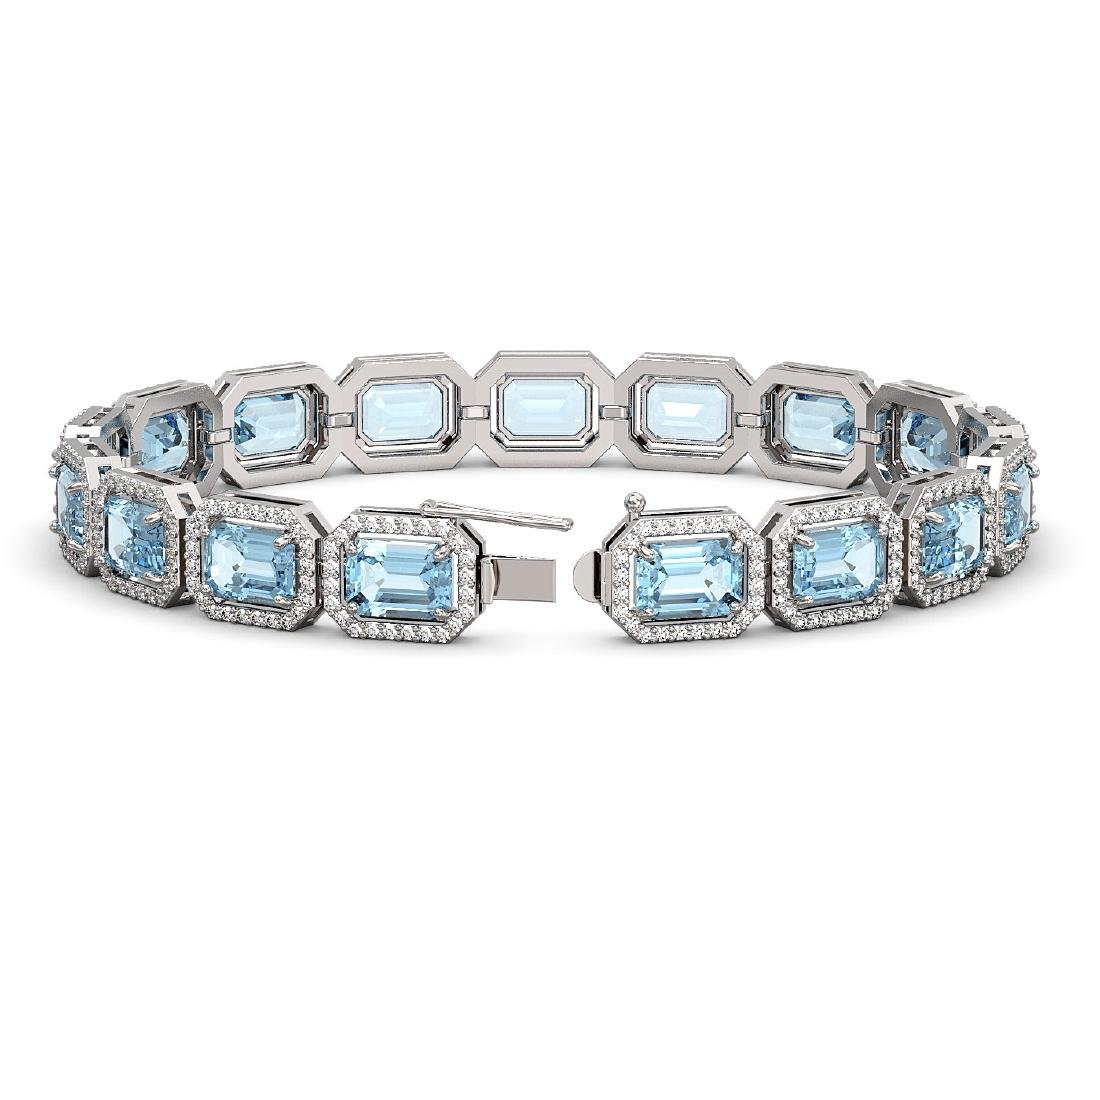 24.51 CTW Aquamarine & Diamond Halo Bracelet 10K White - 2